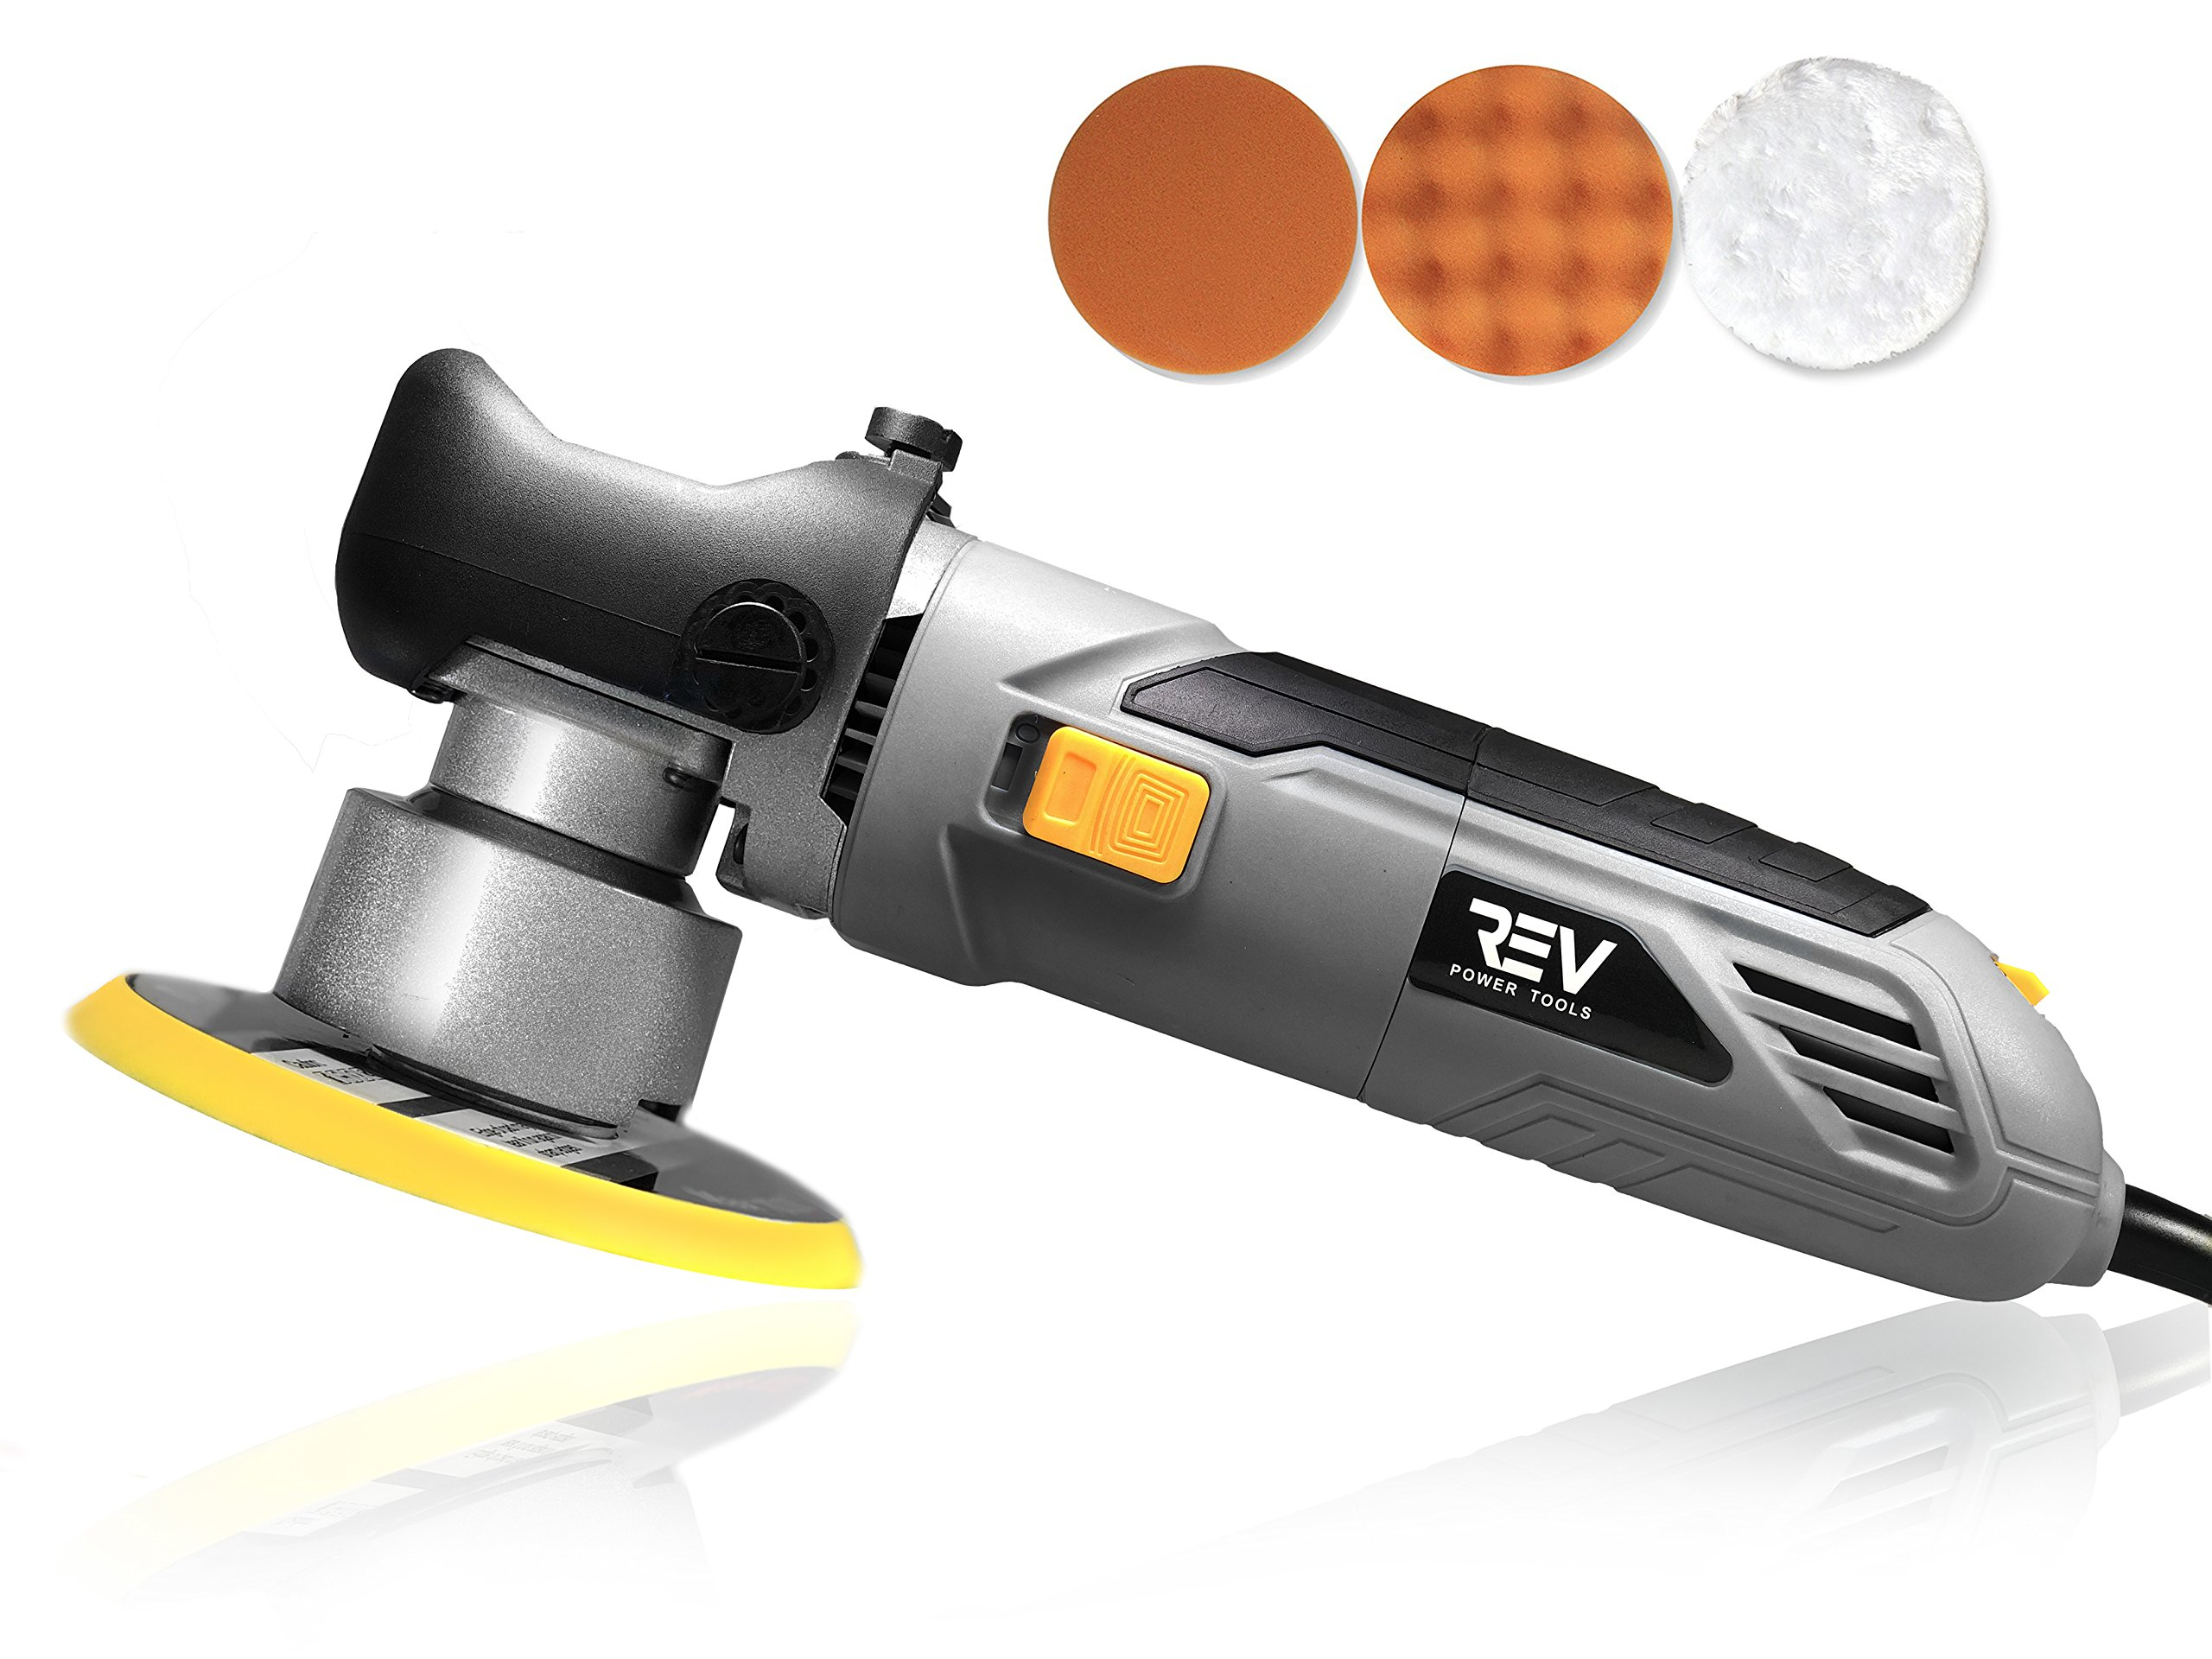 VViViD REV 6'' Dual Action Random Orbital Polisher 6400 RPM + Buffing pads and case.